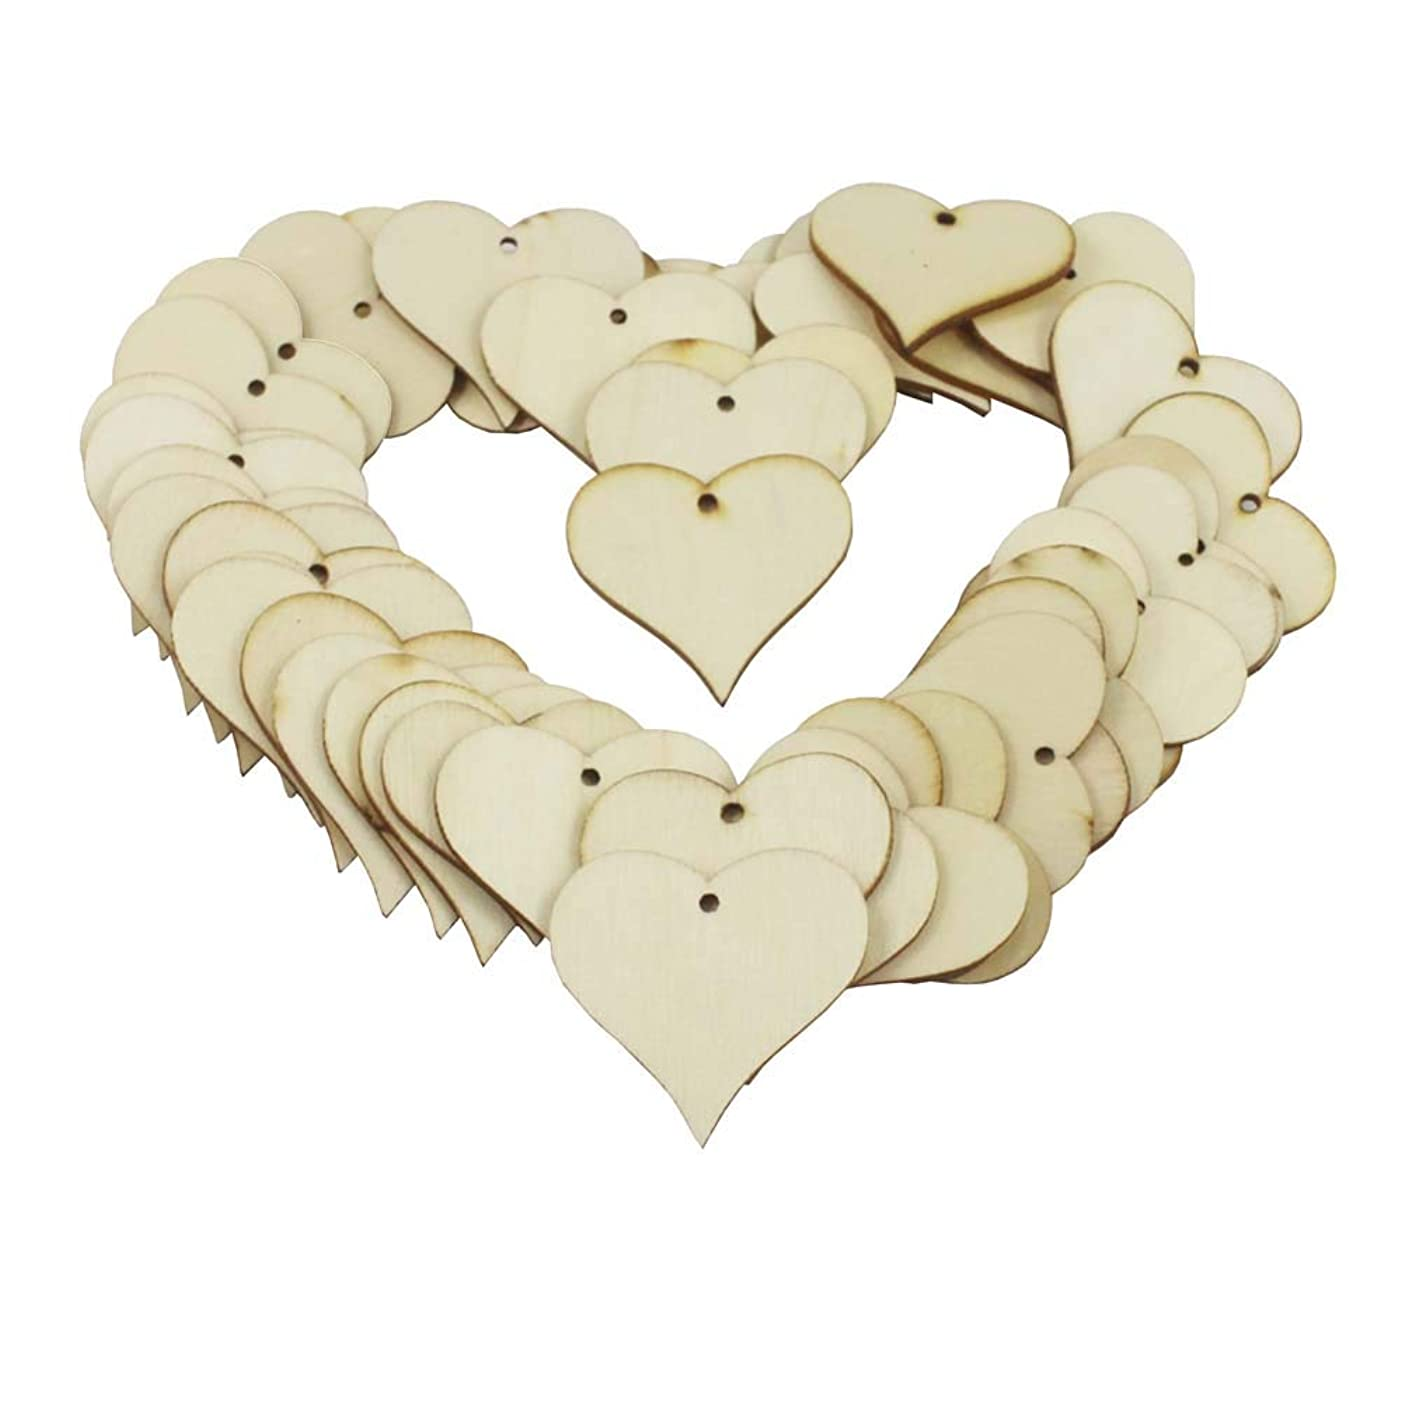 KaLaiXing Heart Shaped Wooden Gift Tags/Price Tags. Plain Wooden Heart Embellishments Crafts-50pcs